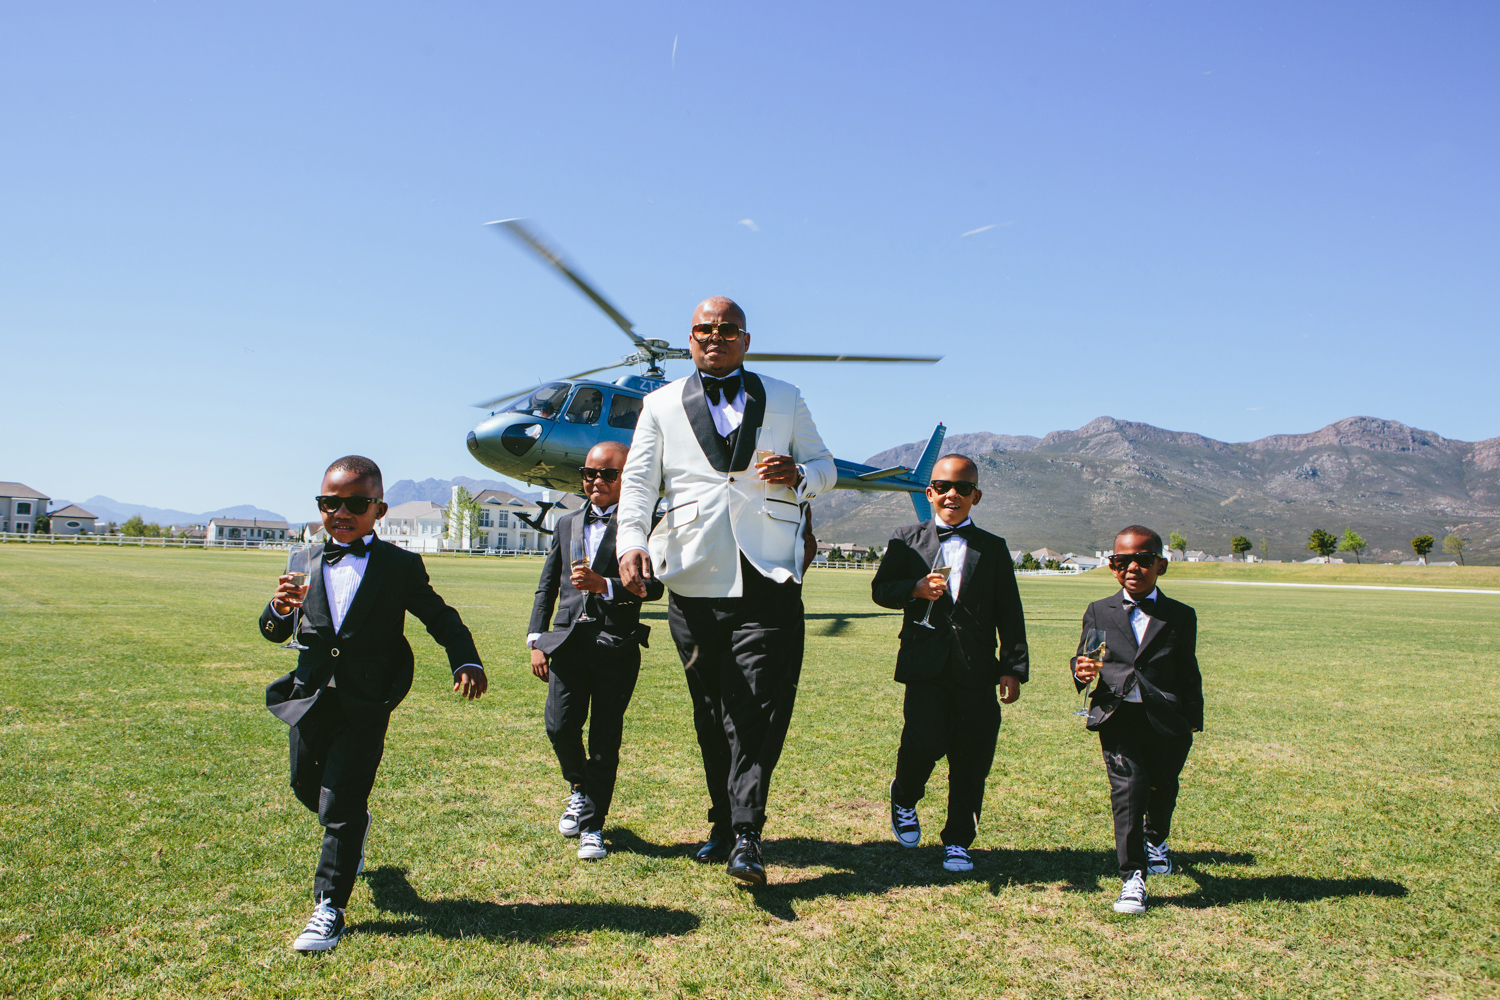 an image taken by Vividblue of the groom and and kinds walking from the landed helicopter at Val de Vie